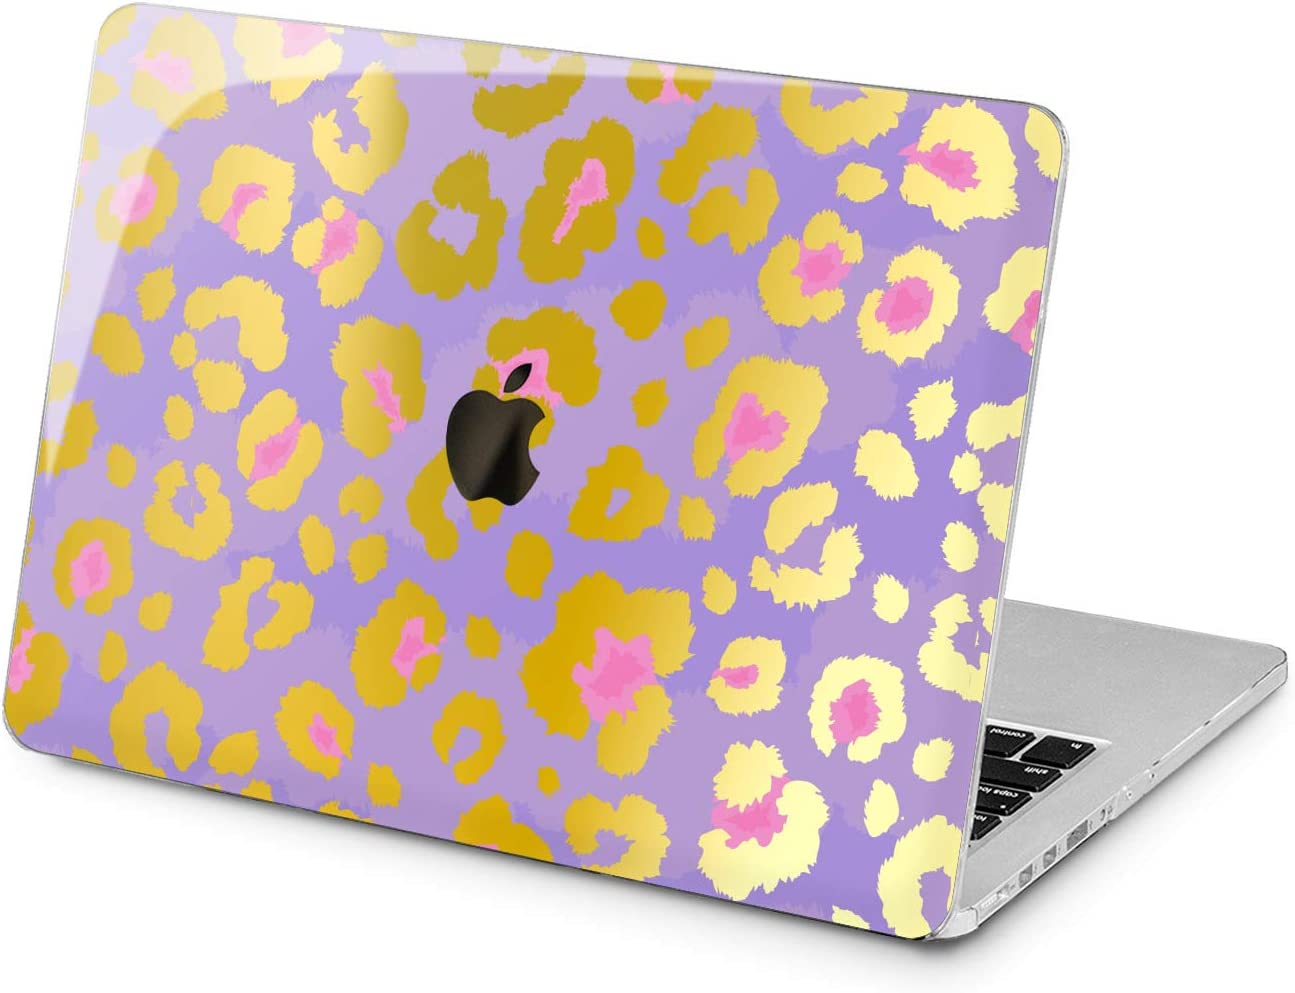 MacBook 15 Case Puppy Love Heart Shaped Trail Paw Plastic Hard Shell Compatible Mac MacBook Air 1466 Case Protection Accessories for MacBook with Mouse Pad